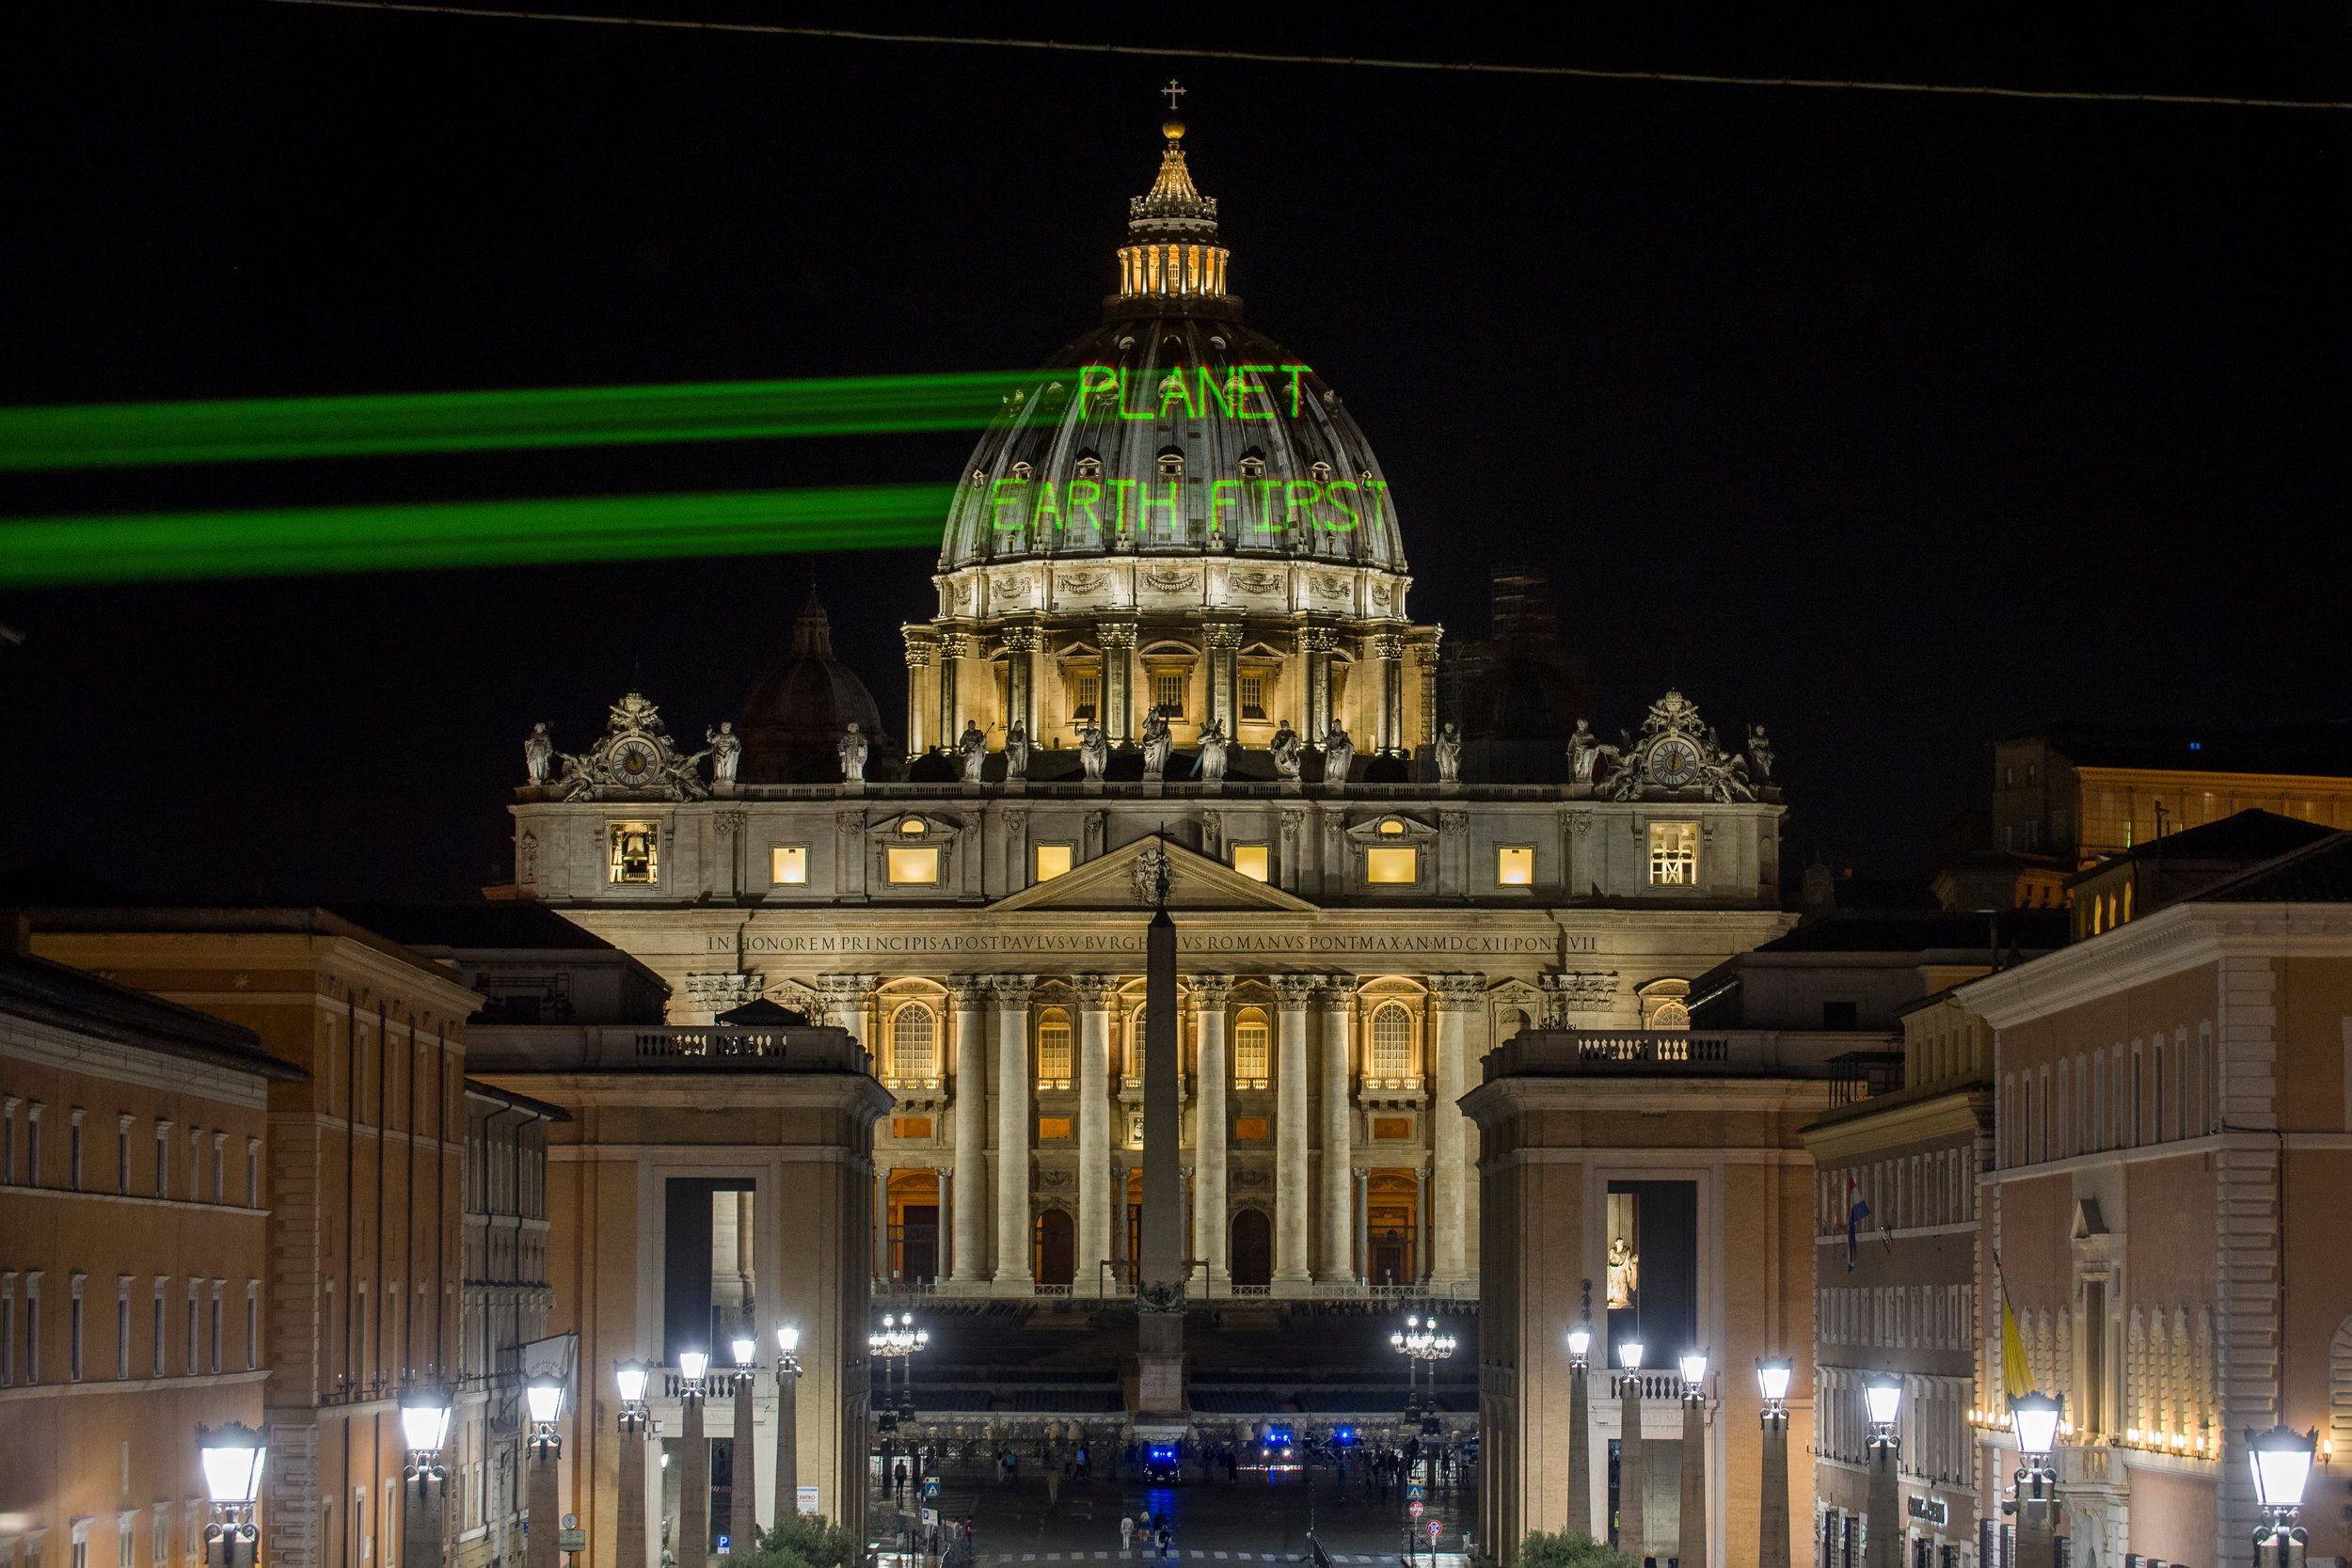 A few hours before the meeting between Pope Francis and President Donald Trump, Greenpeace activists...